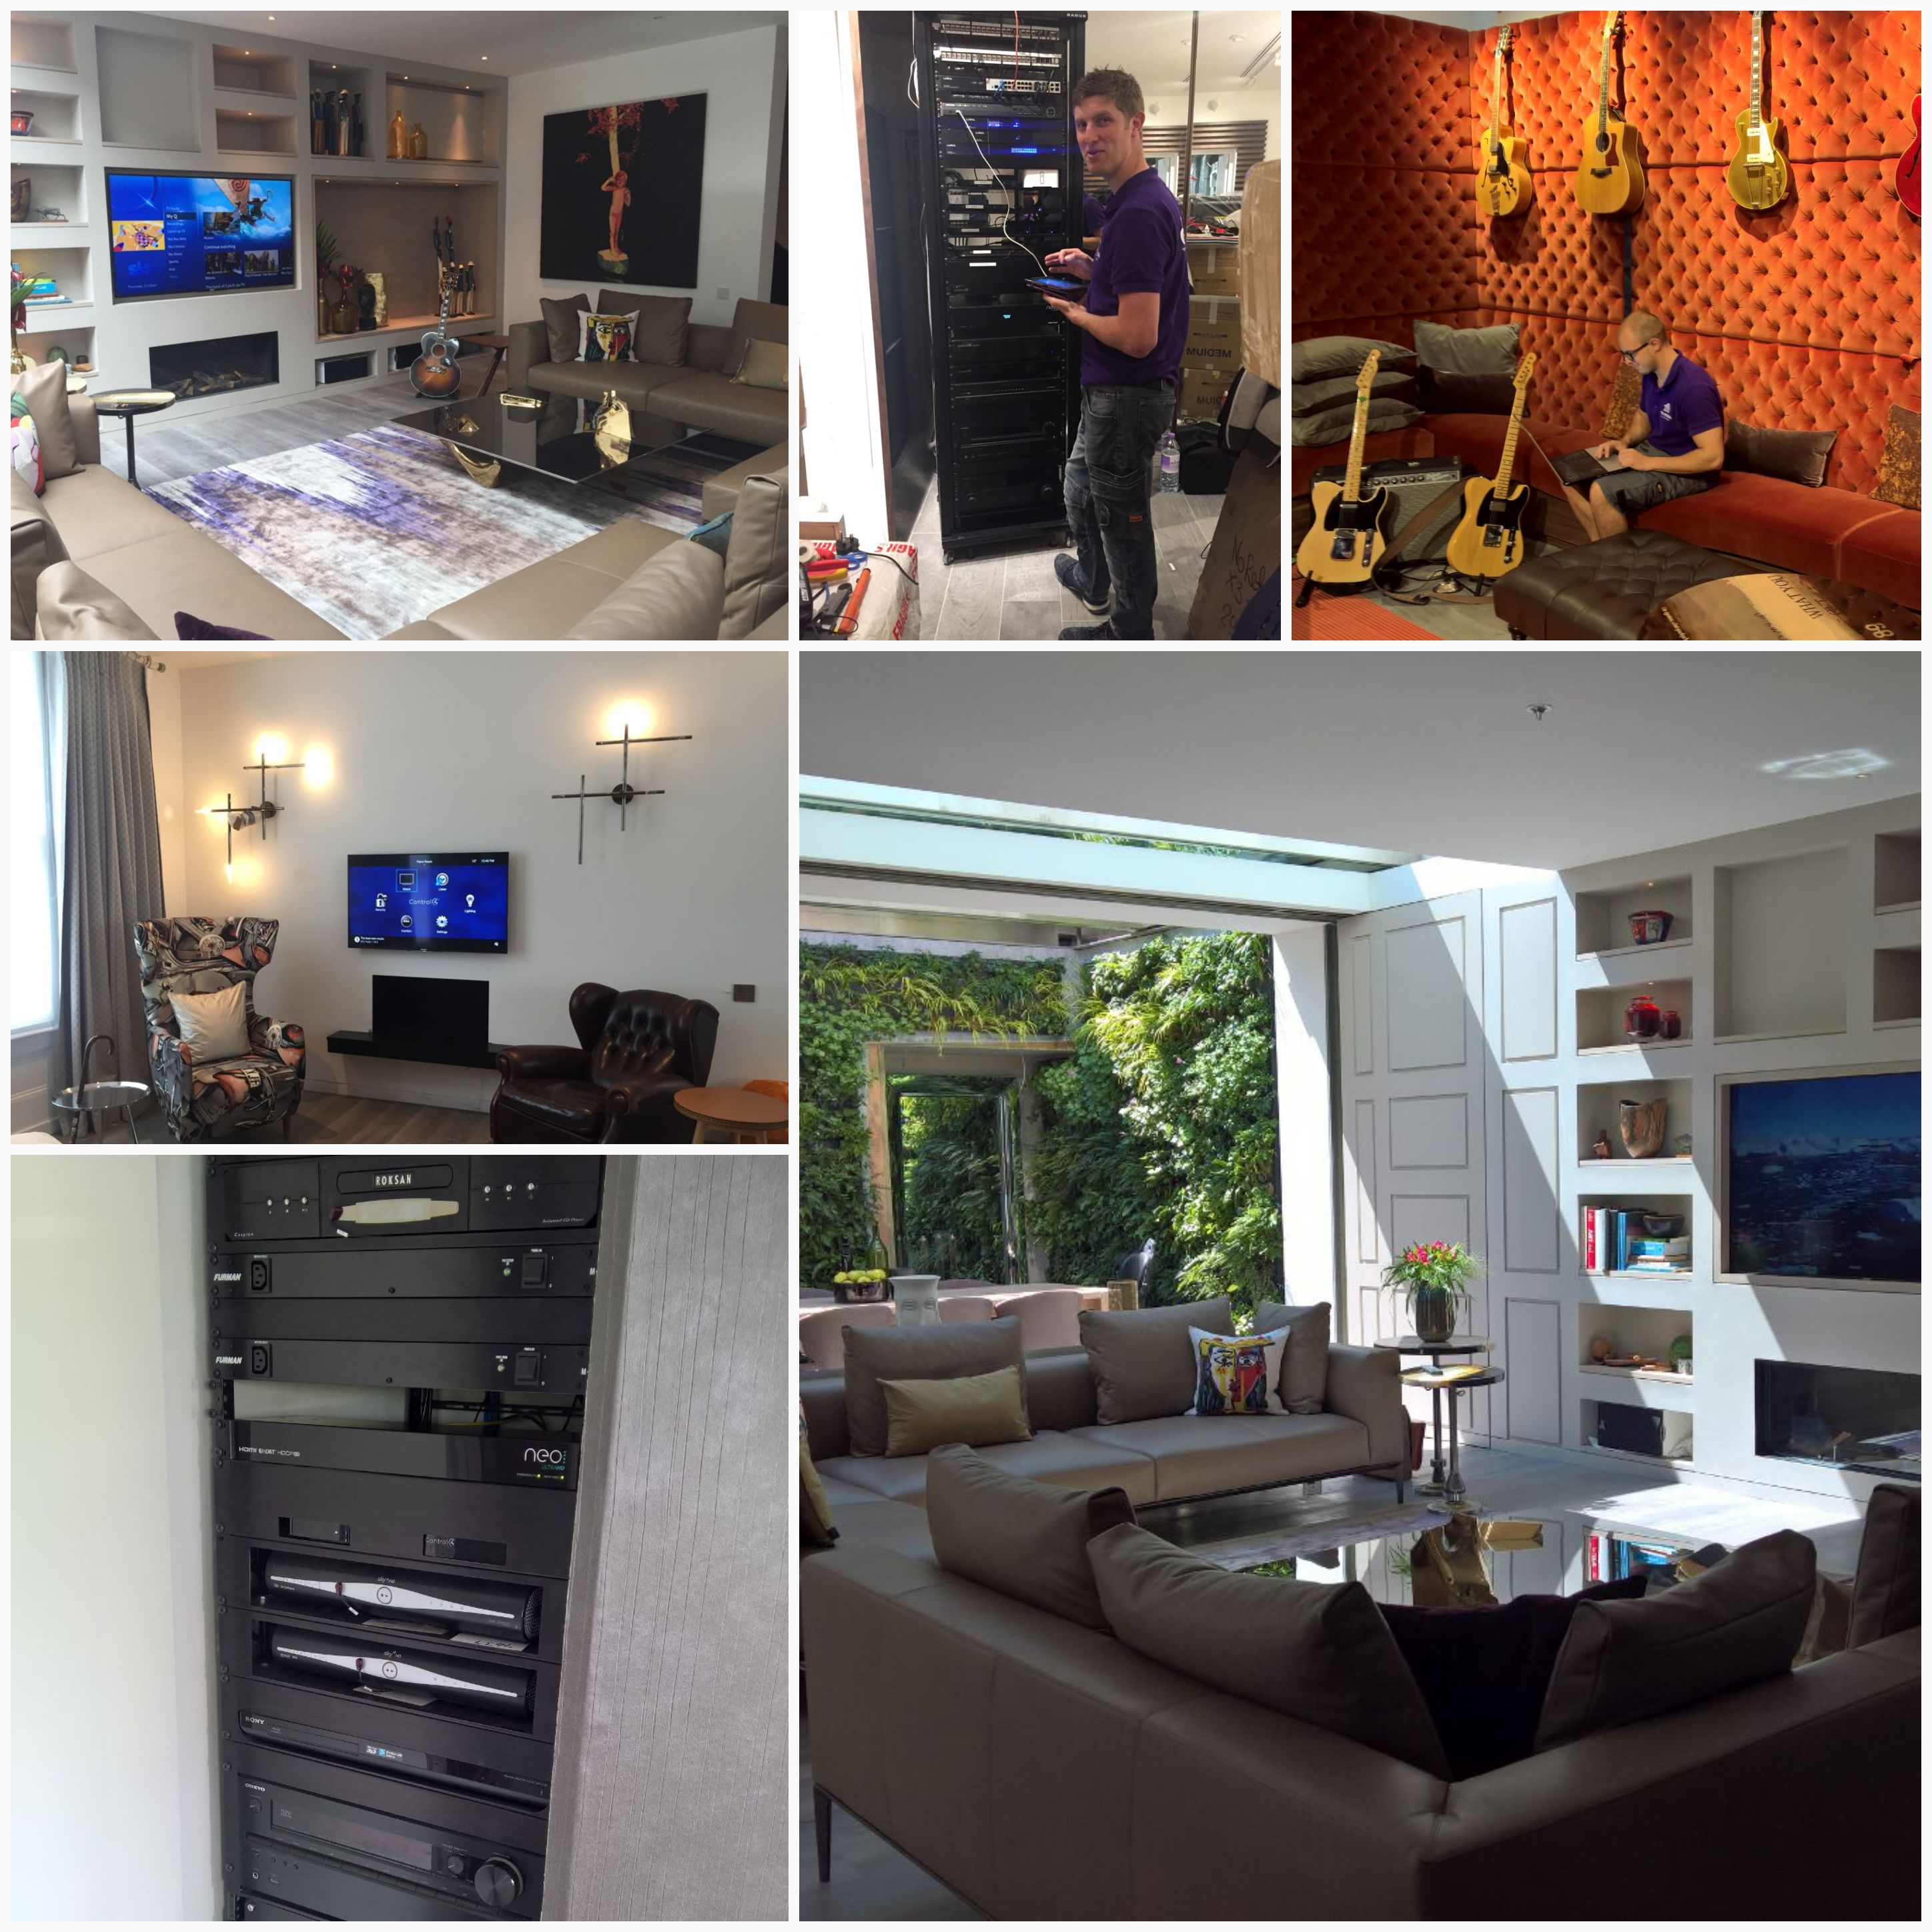 Smart home installation and smart lighting system